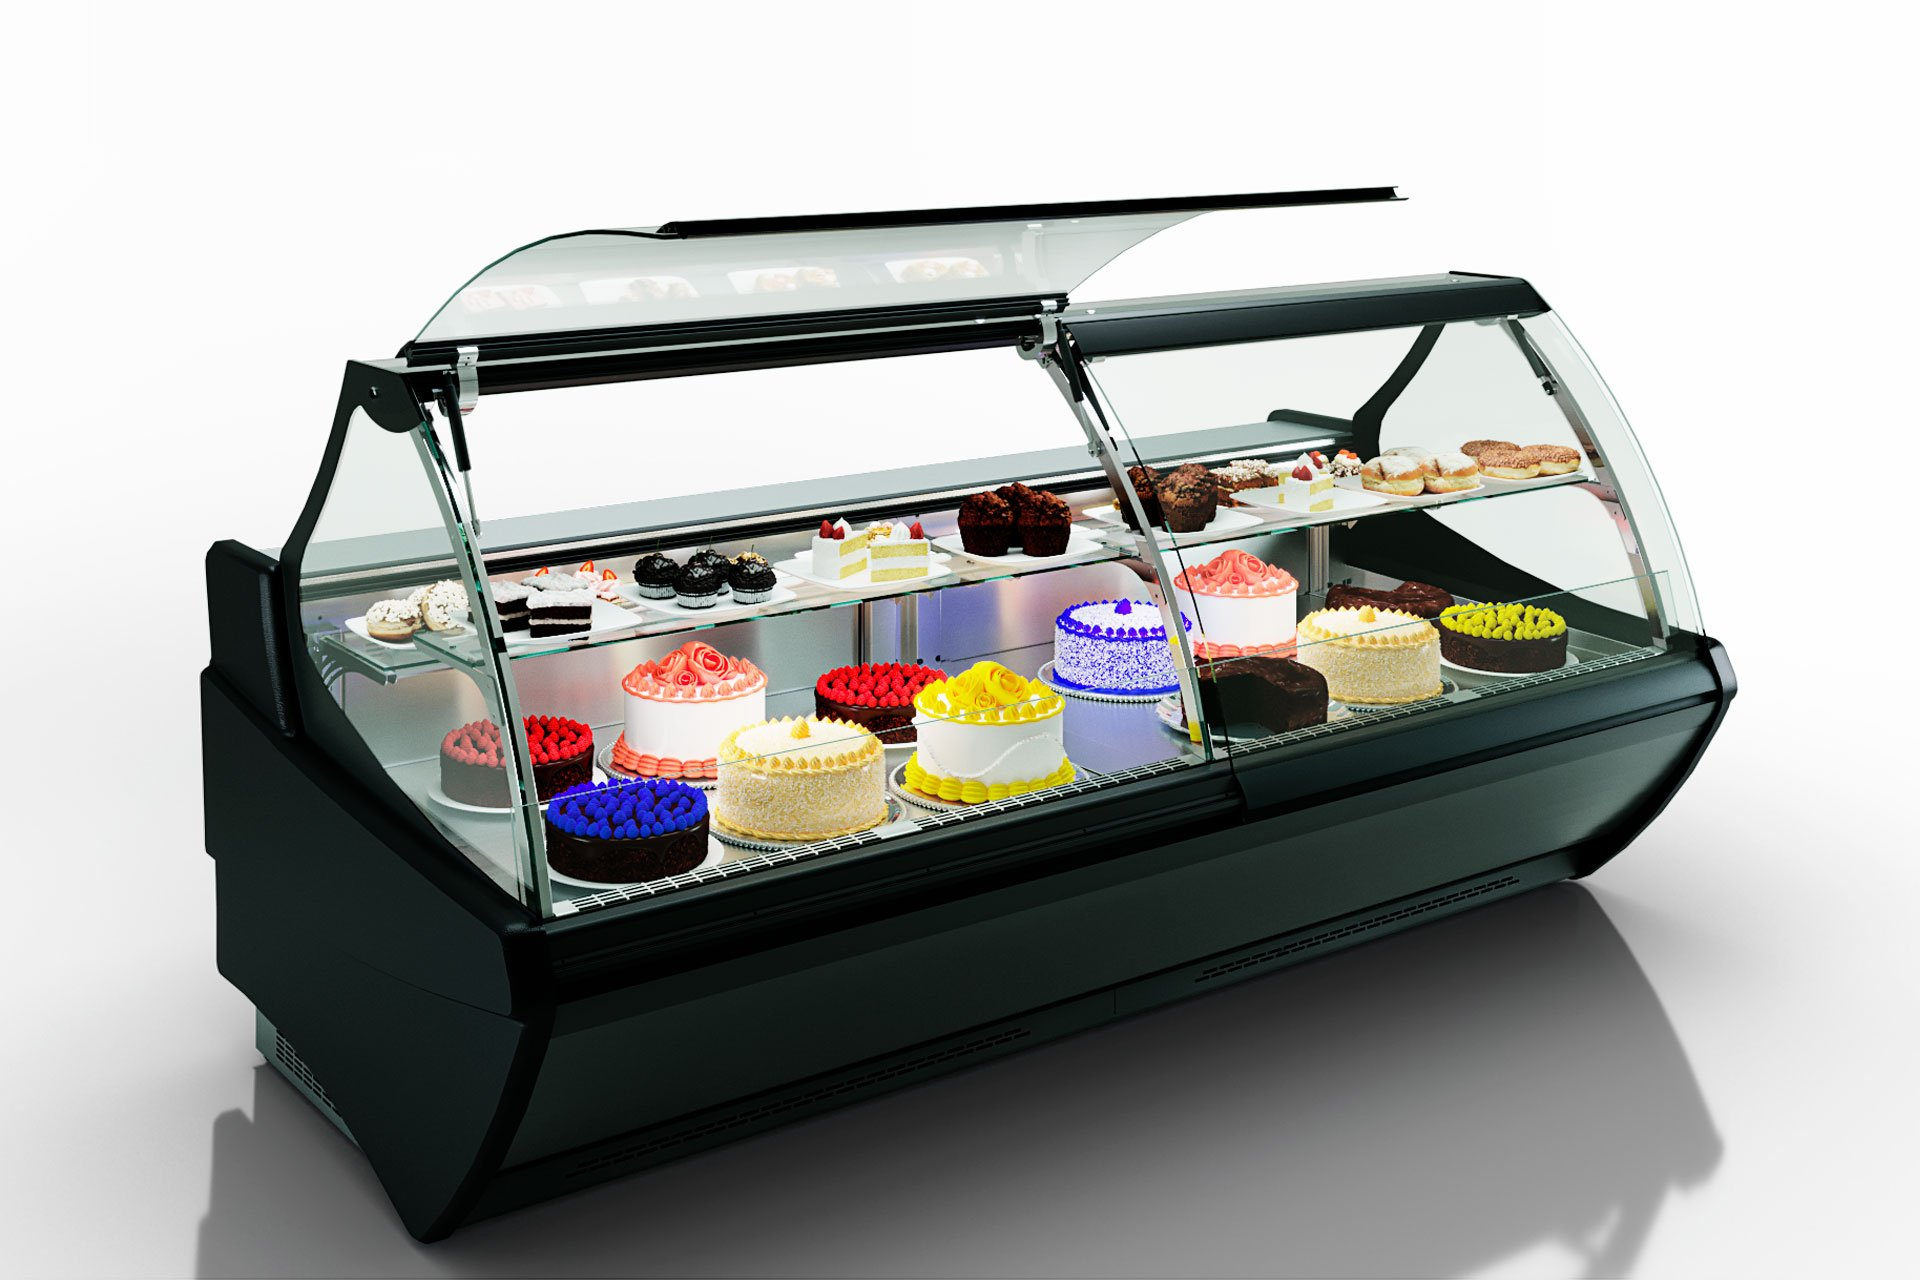 Вітрини Symphony MG 120 patisserie PS 125-DLM